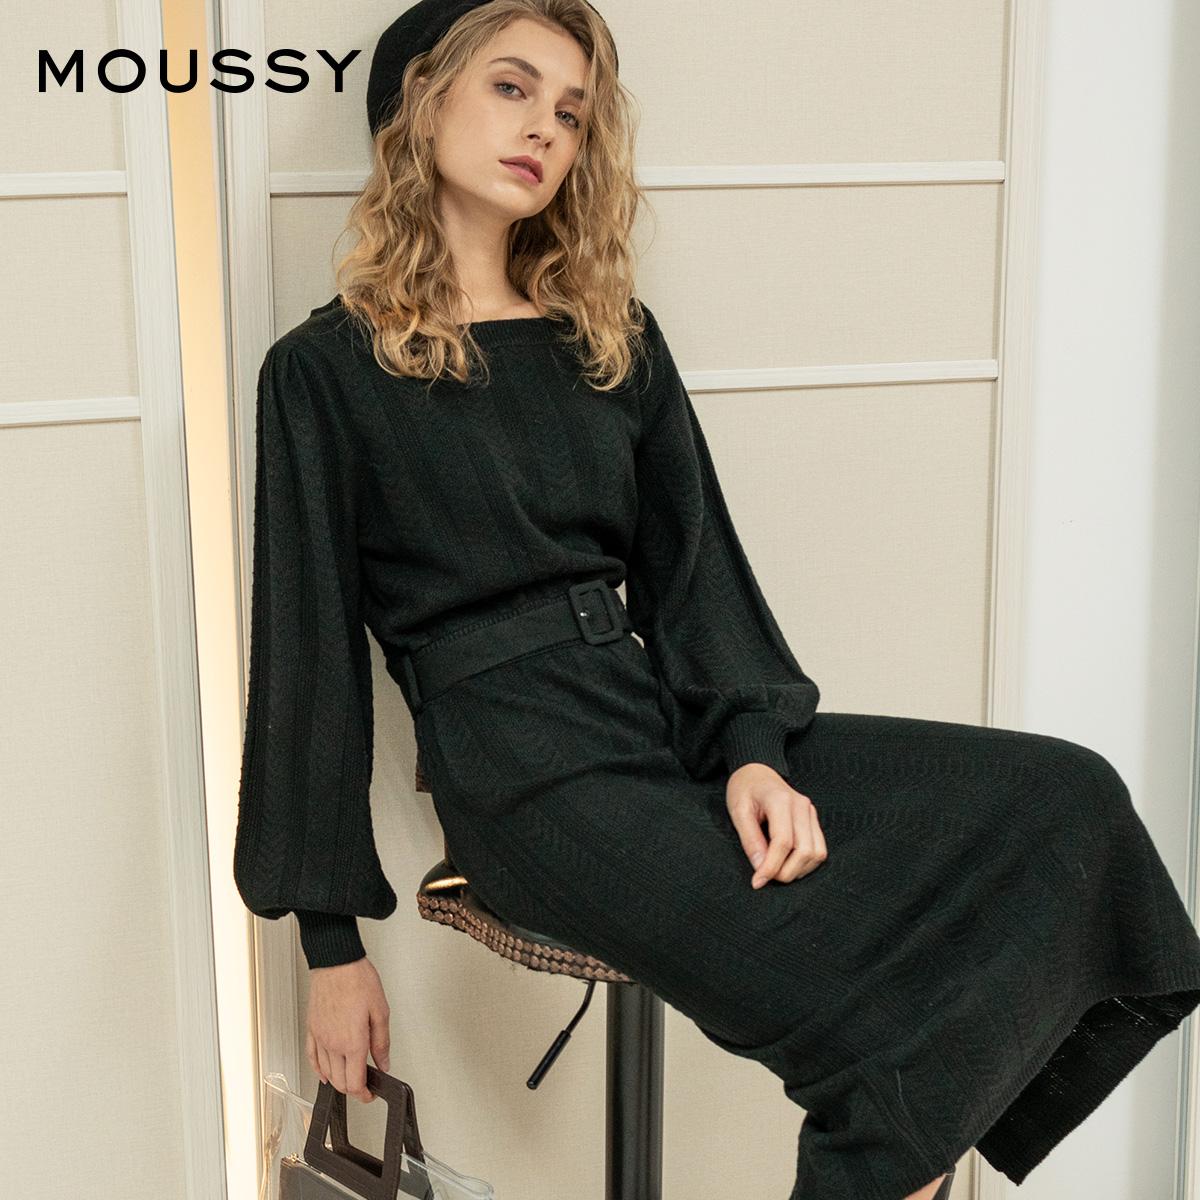 MOUSSY Square Collar Waist Slit Loose Knit Dress 010CAF70-6110